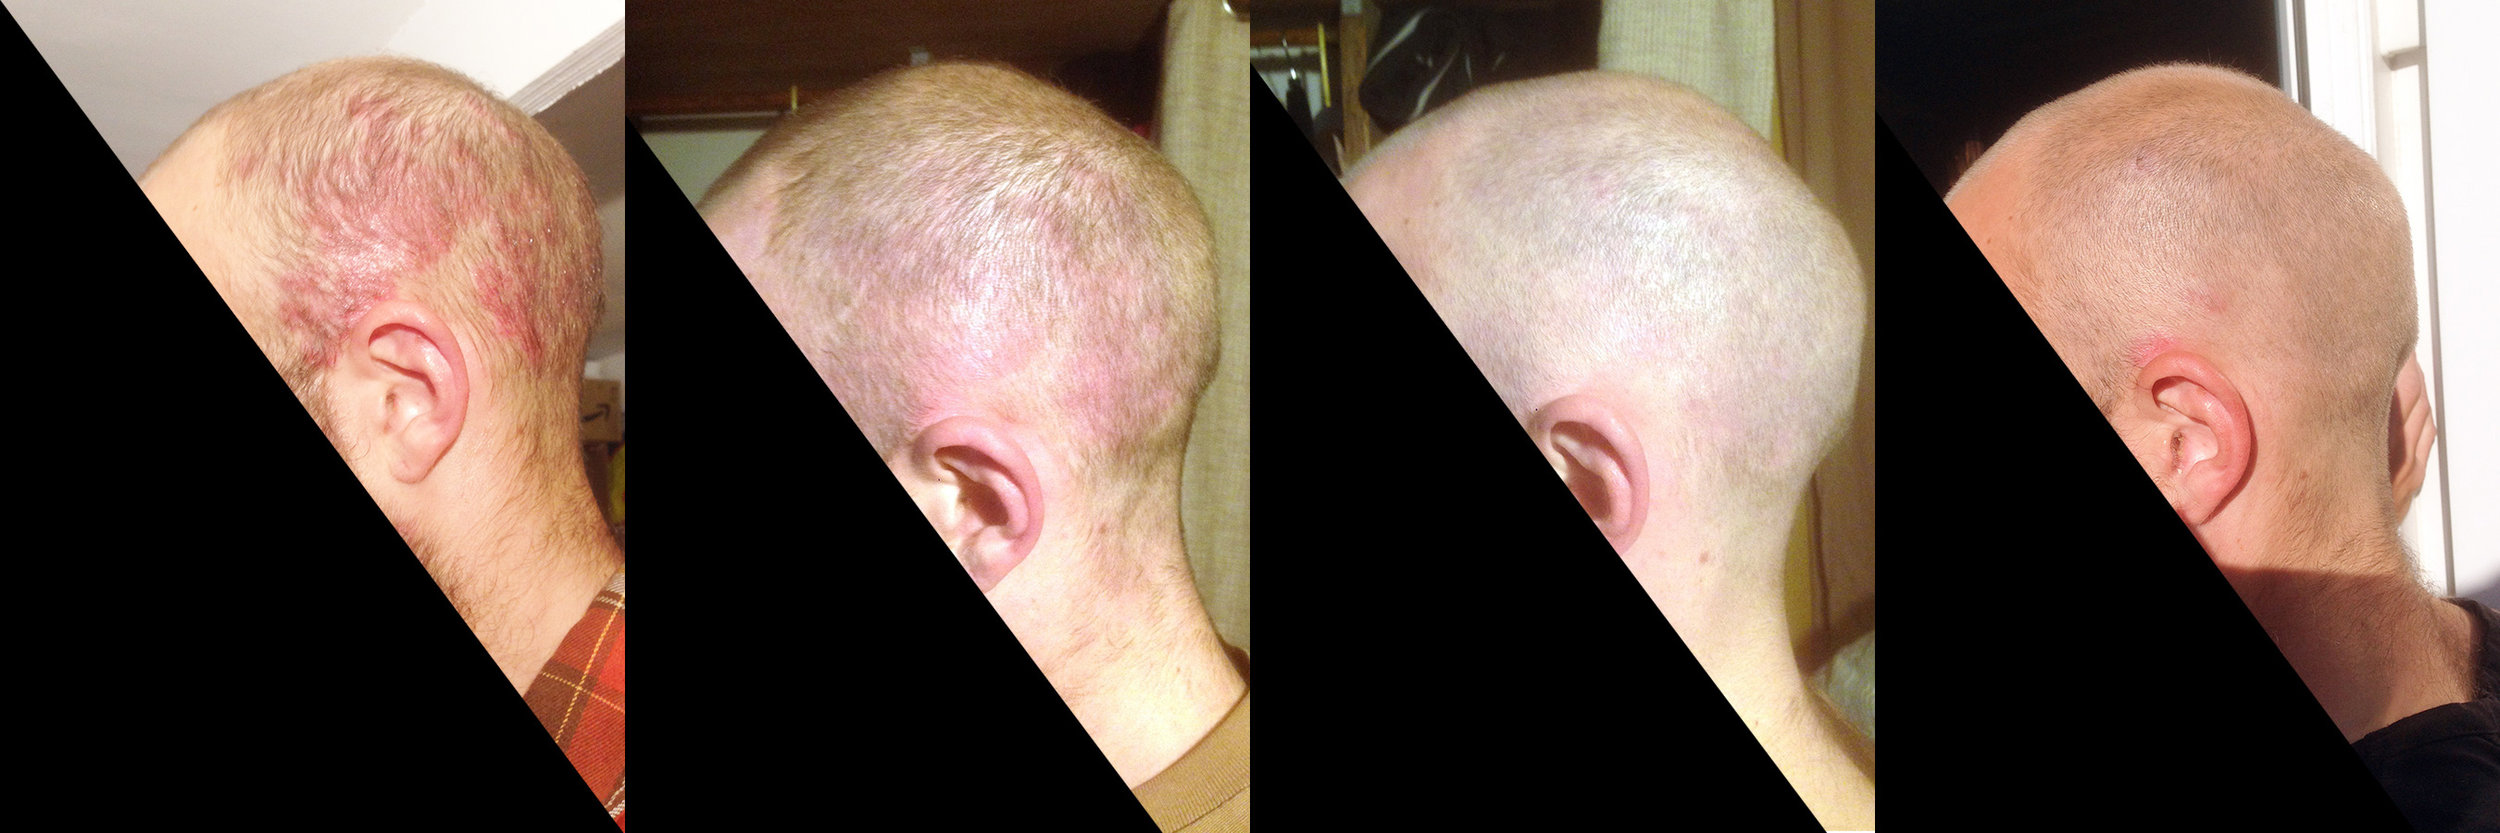 LEFT SIDE OF SCALP, HEALING PROGRESSION OVER 7 MONTHS